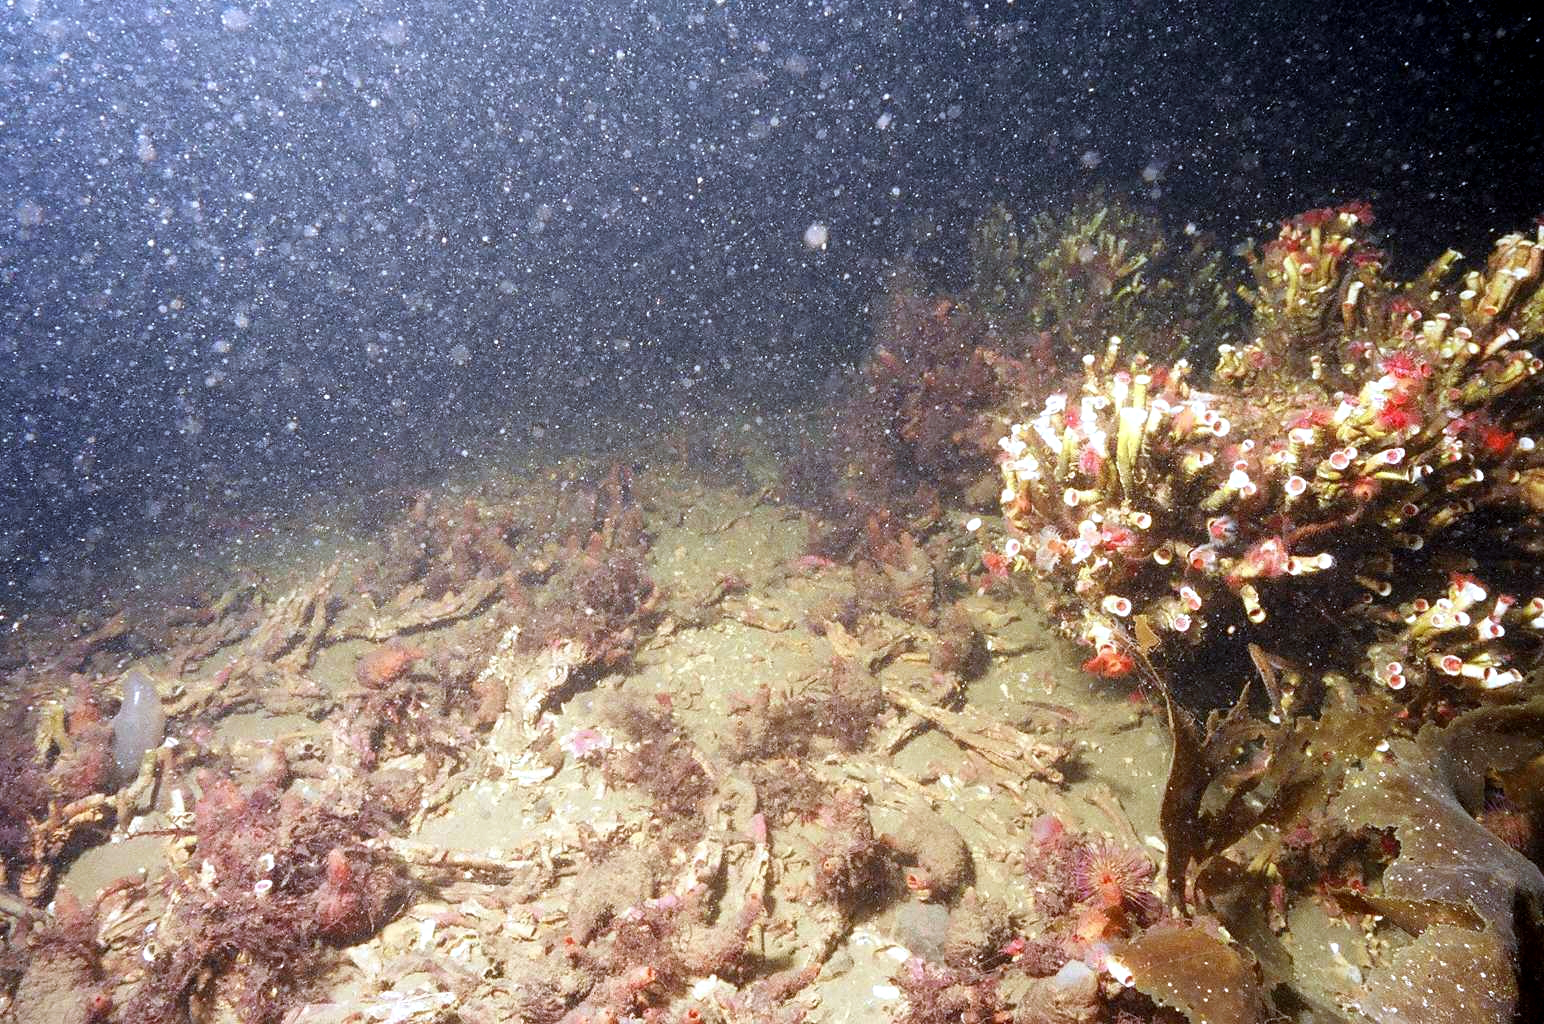 Figure 1. Edge of demersal fishing track through serpulid reef habitat in Loch Creran, Argyll, showing healthy reefs to the right and broken reef rubble within the track to the left.